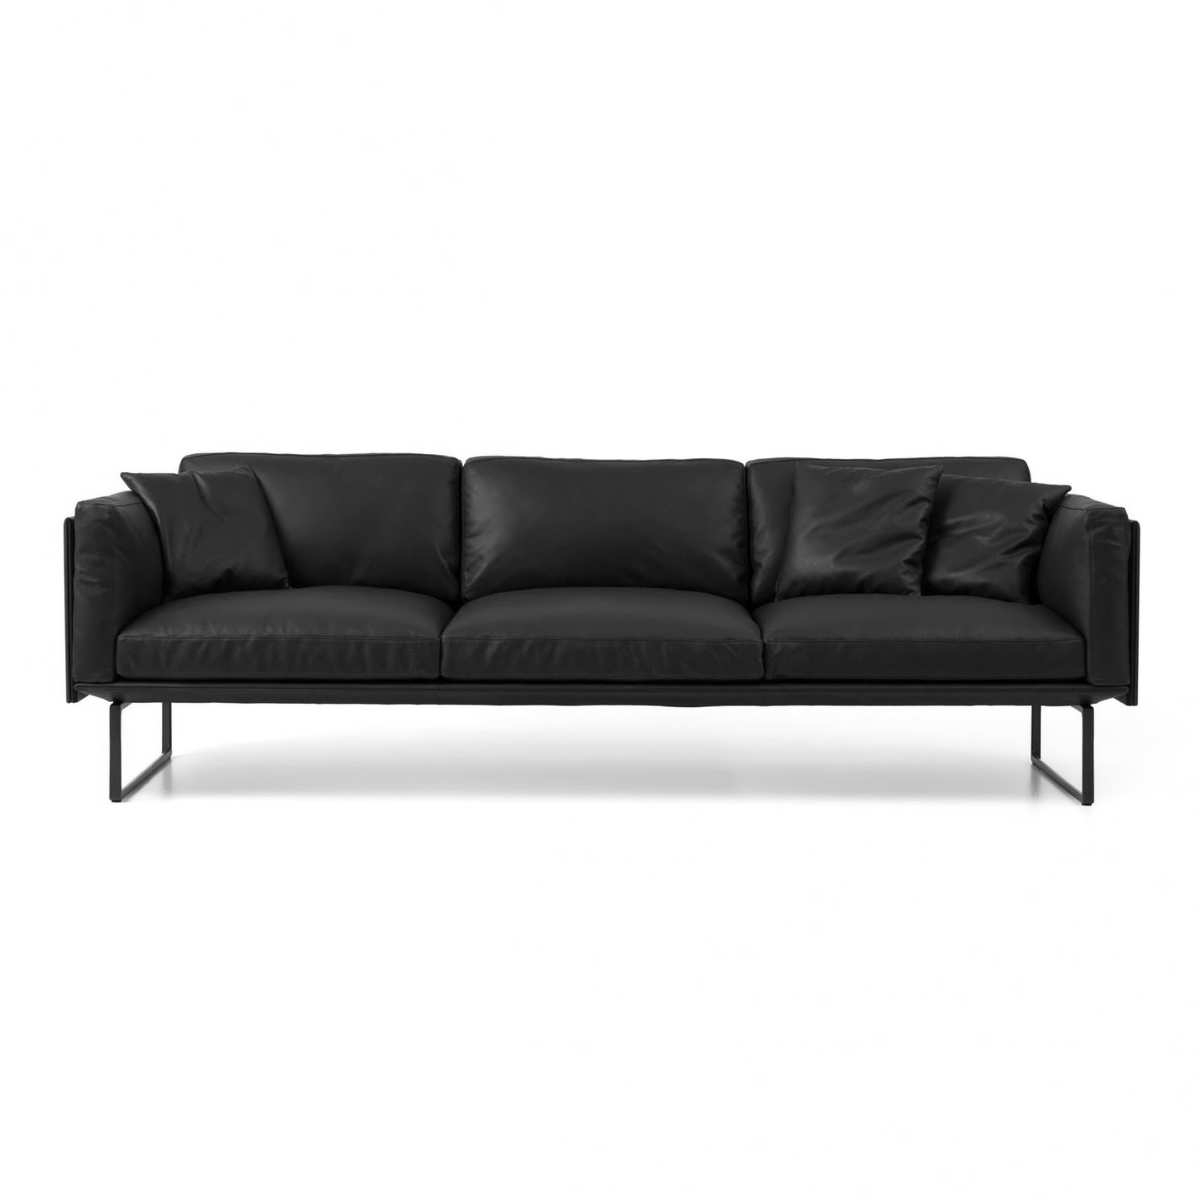 Well Known Sofa : Recliner Sofa Sofa Beds Sofa Bed Couch With Chaise Black Intended For Sofabeds With Chaise (View 14 of 15)